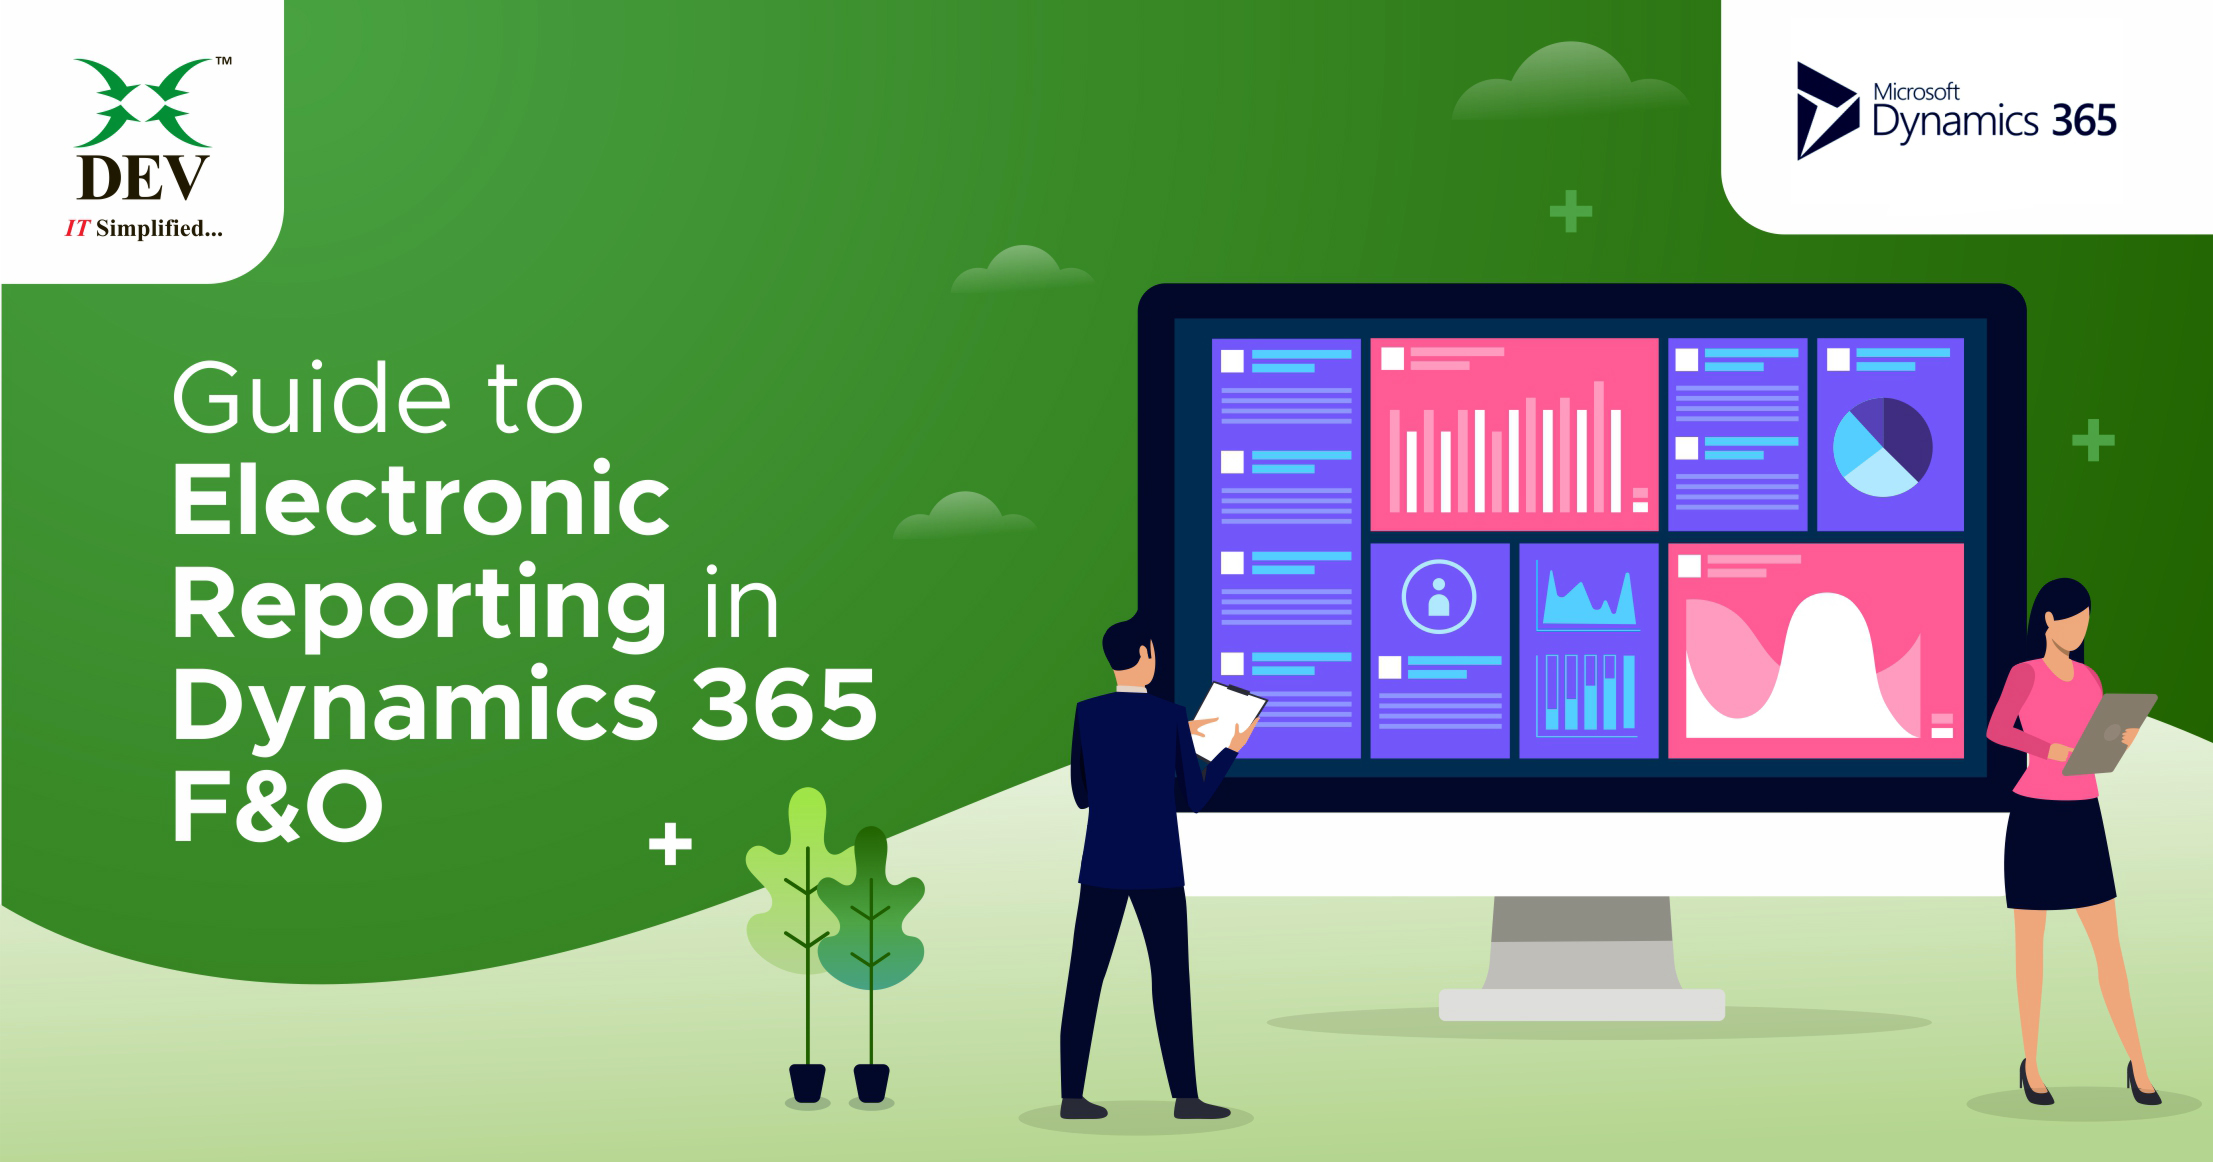 Everything About Electronic Reporting in Dynamics 365 F&O